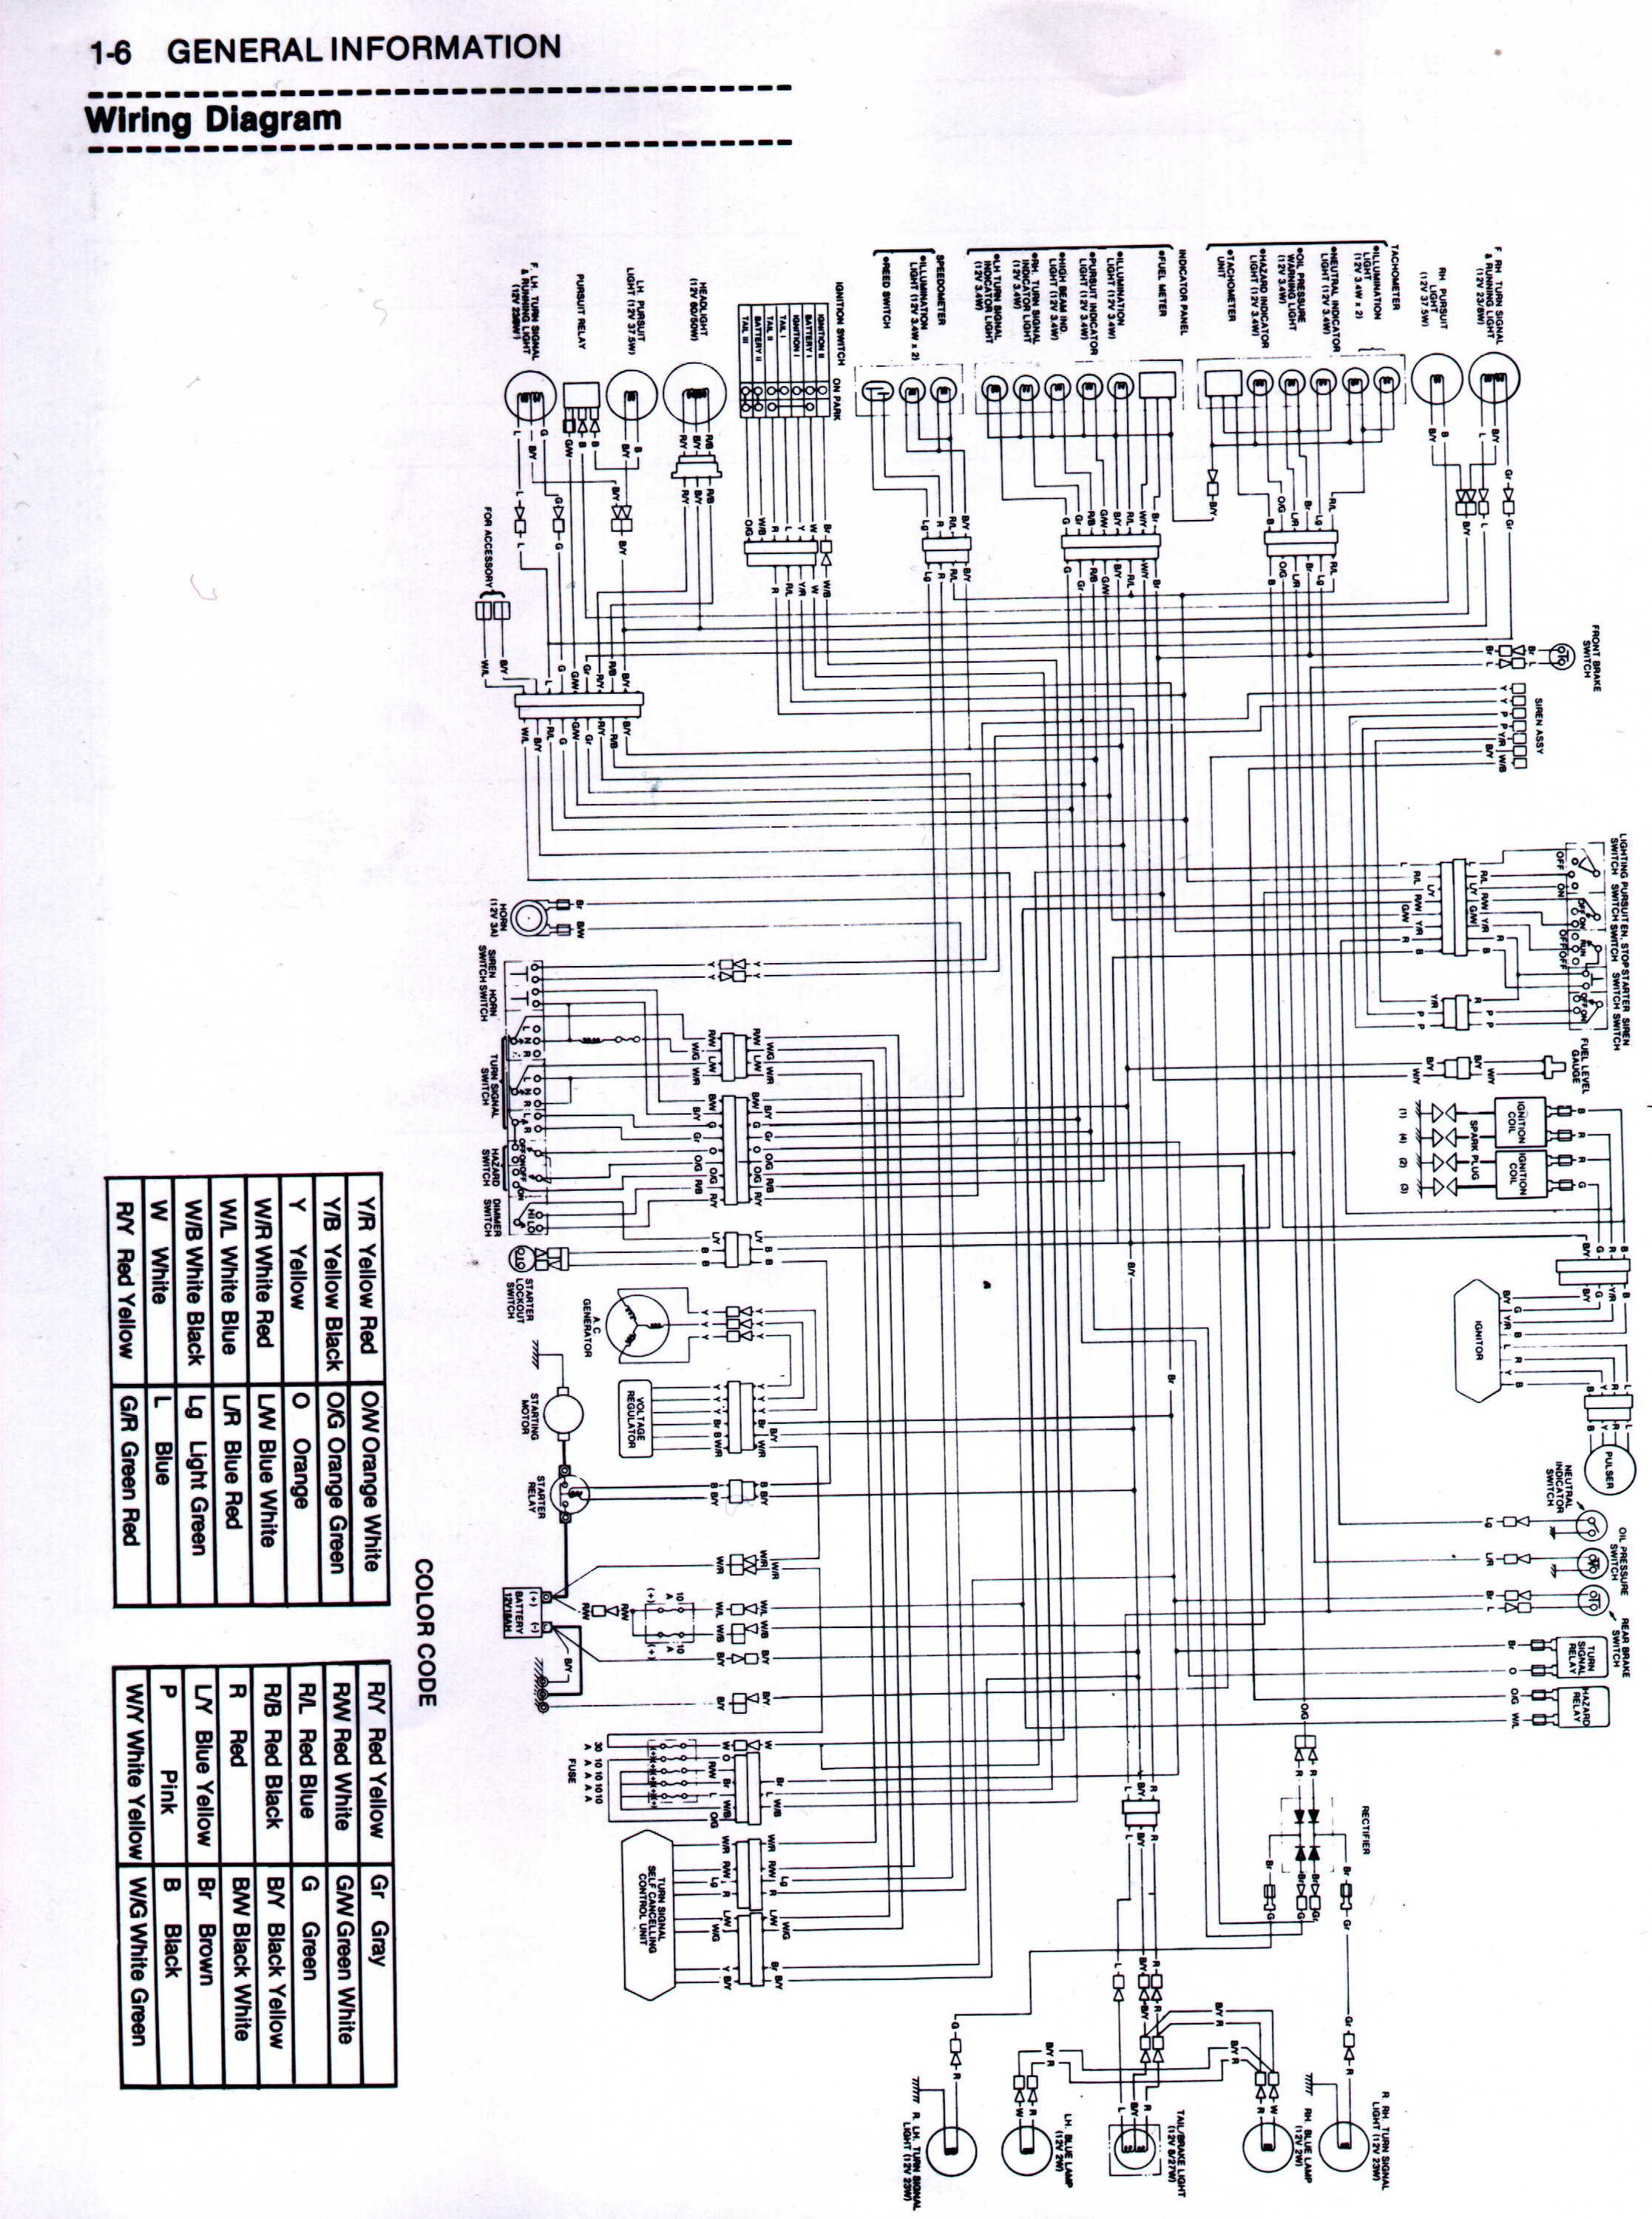 1982 kdx 400 wire diagram wiring library diagram a4 led circuit diagrams 1982 kdx 400 wire [ 2234 x 3000 Pixel ]